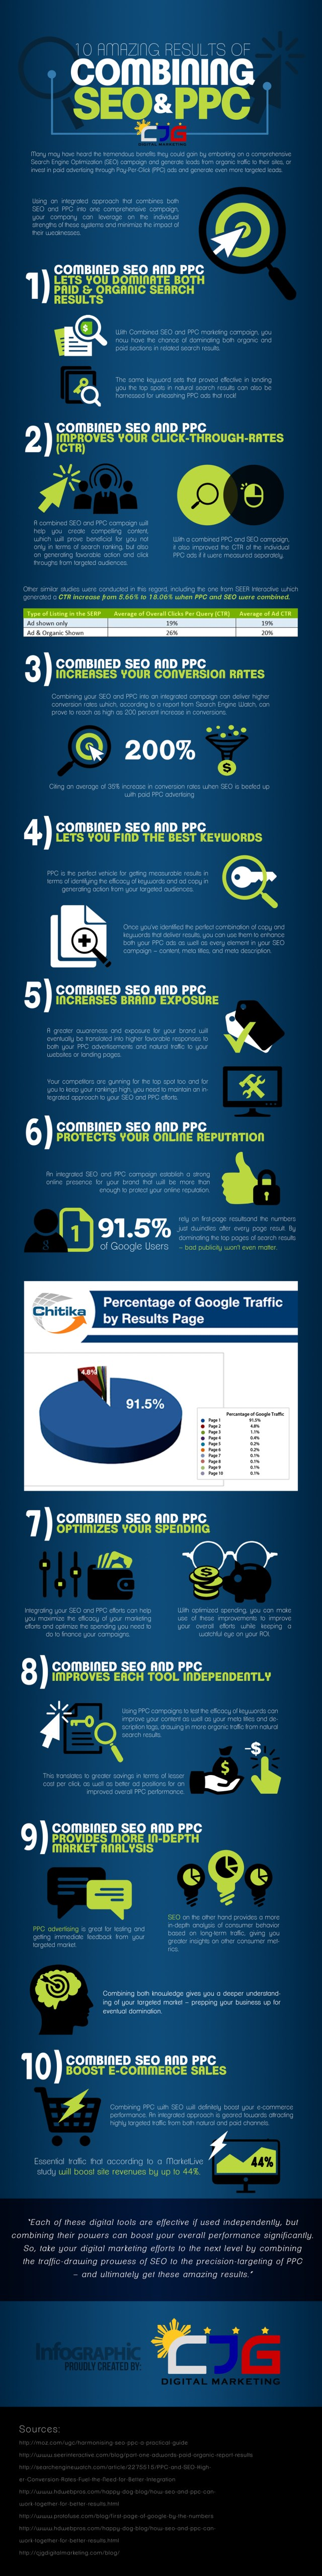 Advantages of Combined SEO and PPC Strategy [Inforgraphic]